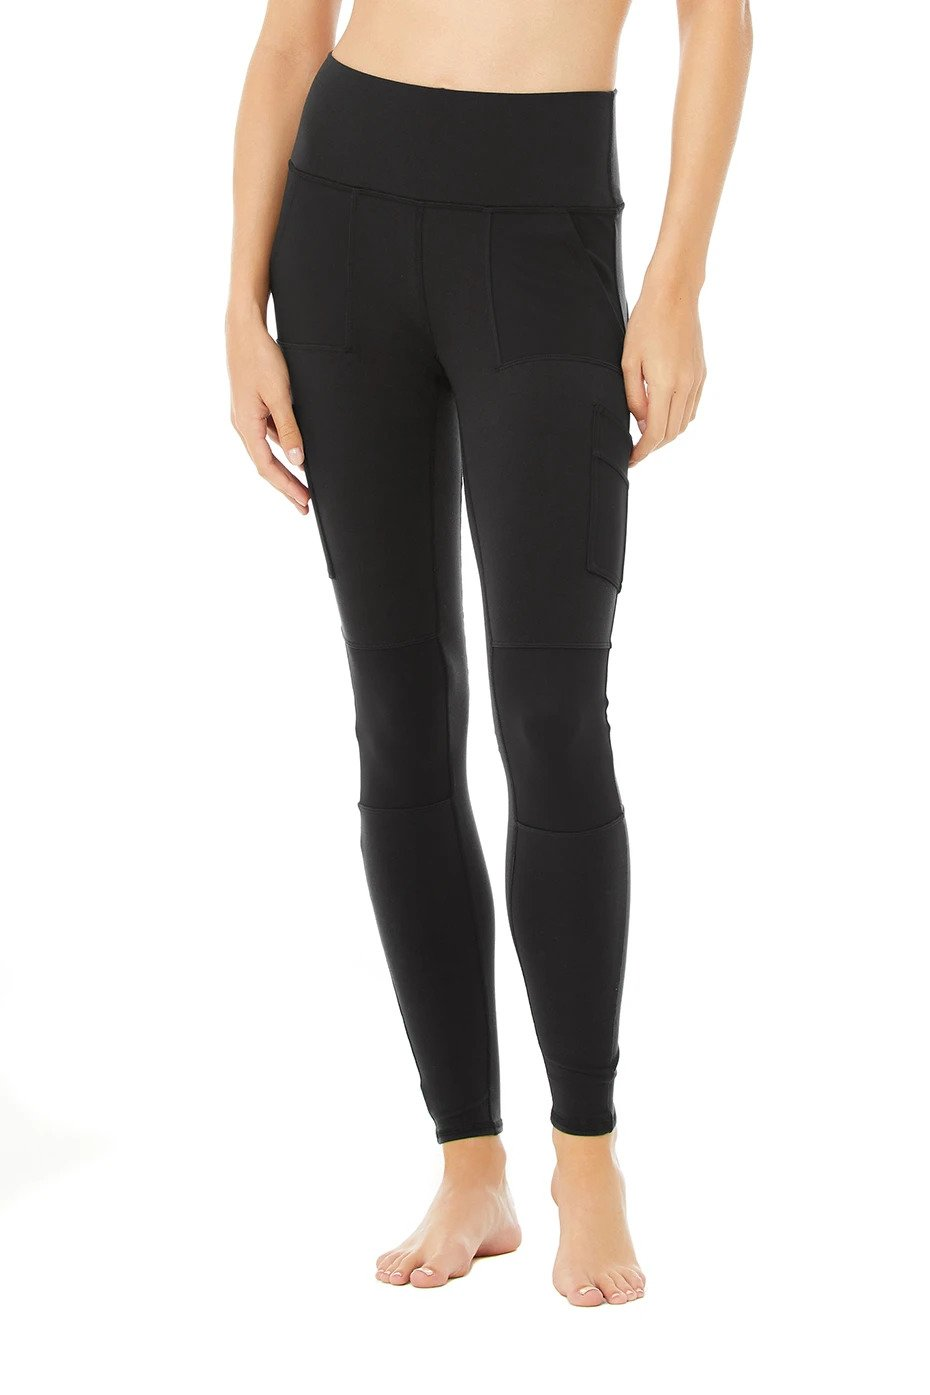 Alo Yoga XS High-Waist Cargo Legging - Black